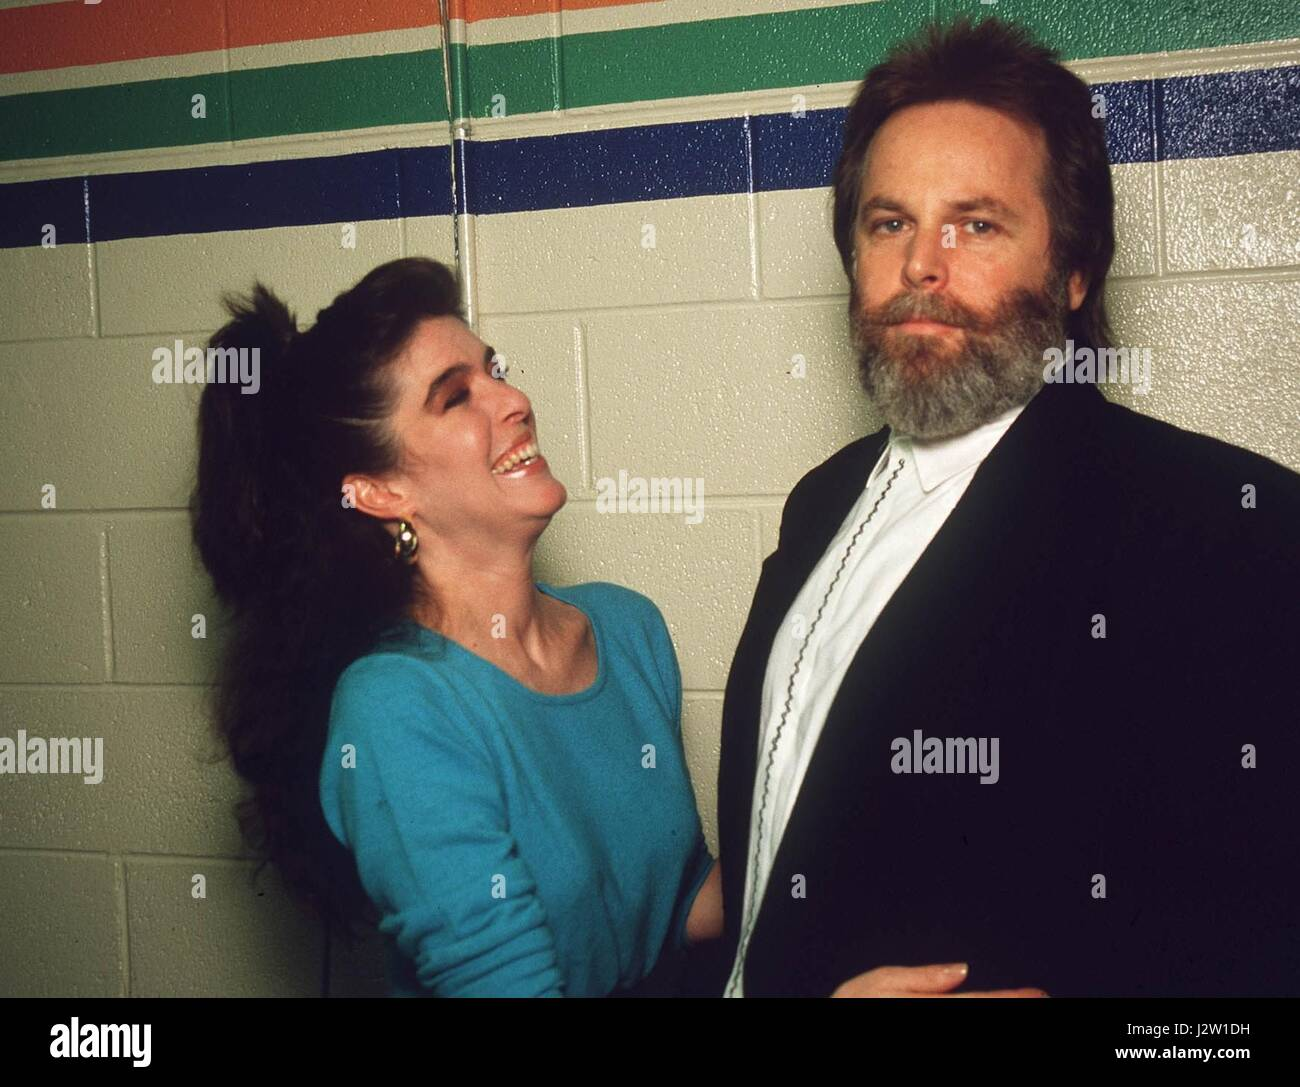 carl wilson and gina martin relationship test